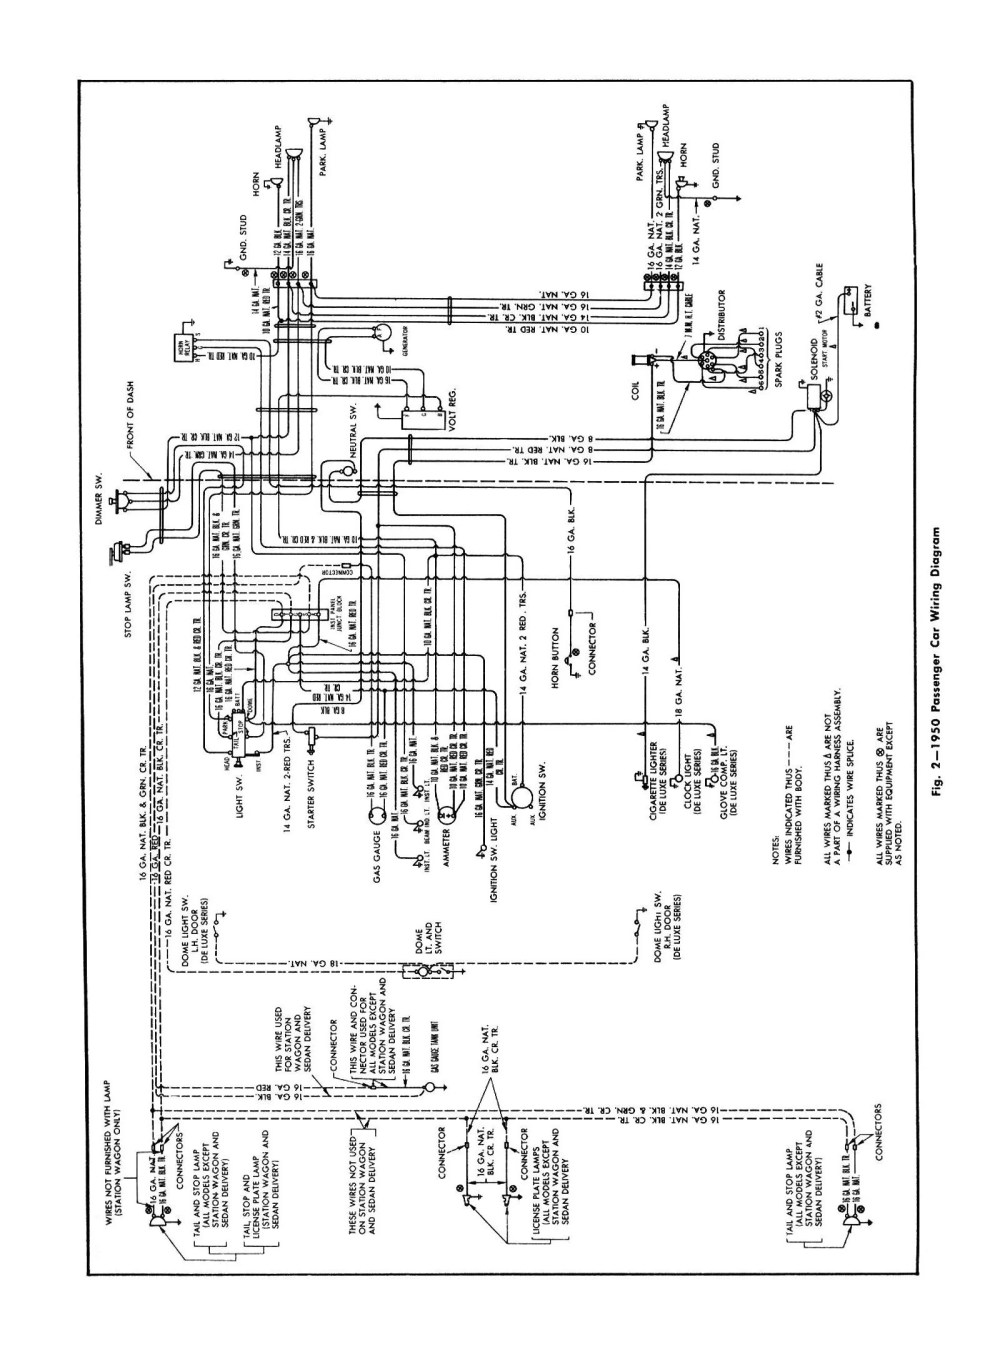 medium resolution of 1948 ford f1 wiring diagram wiring diagram 1948 ford f1 wiring harness diagram